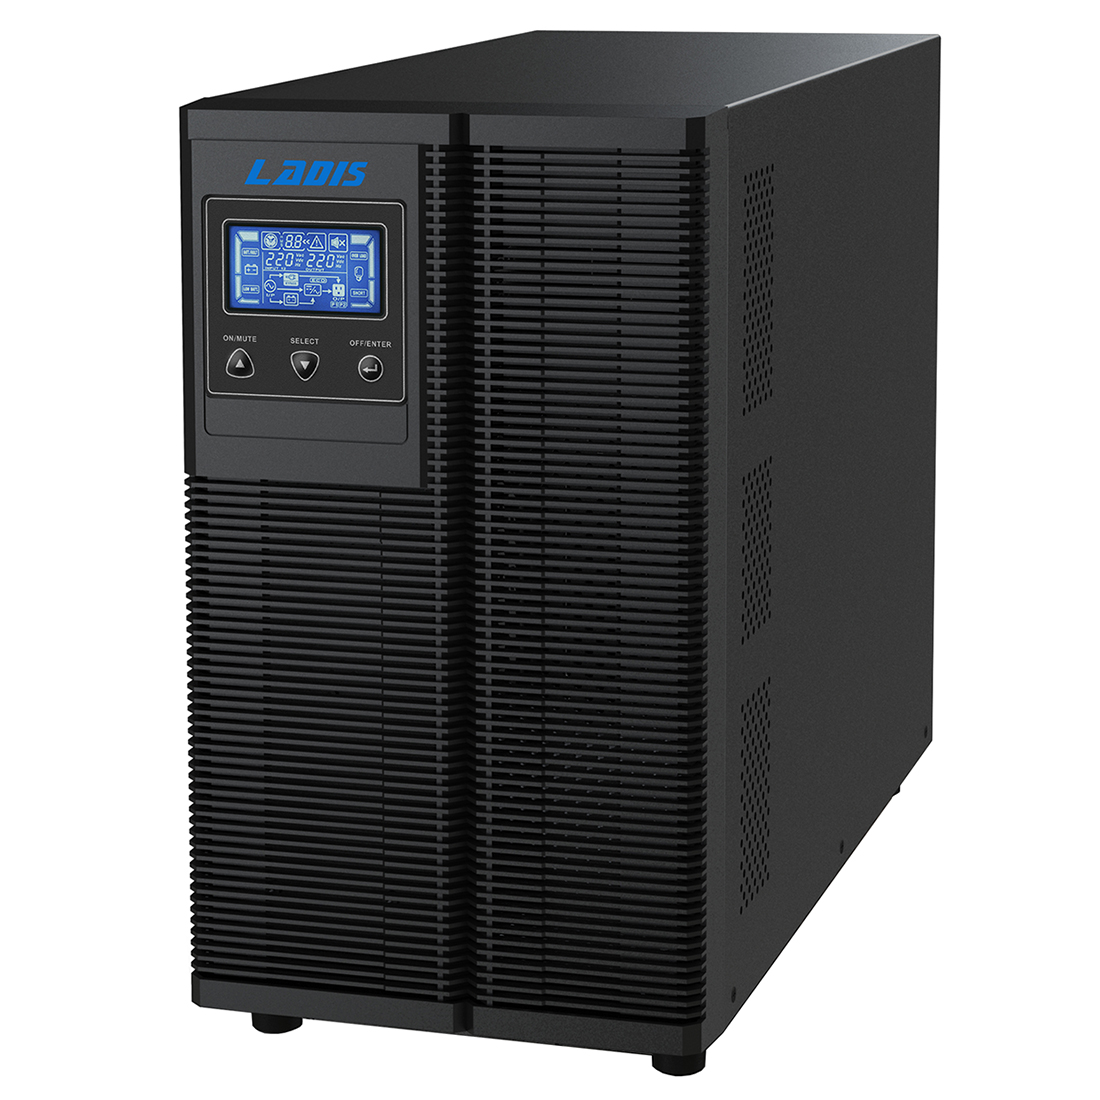 Division g3k Online UPS uninterruptible power supply 3000VA 2400W LCD automatic switching machine